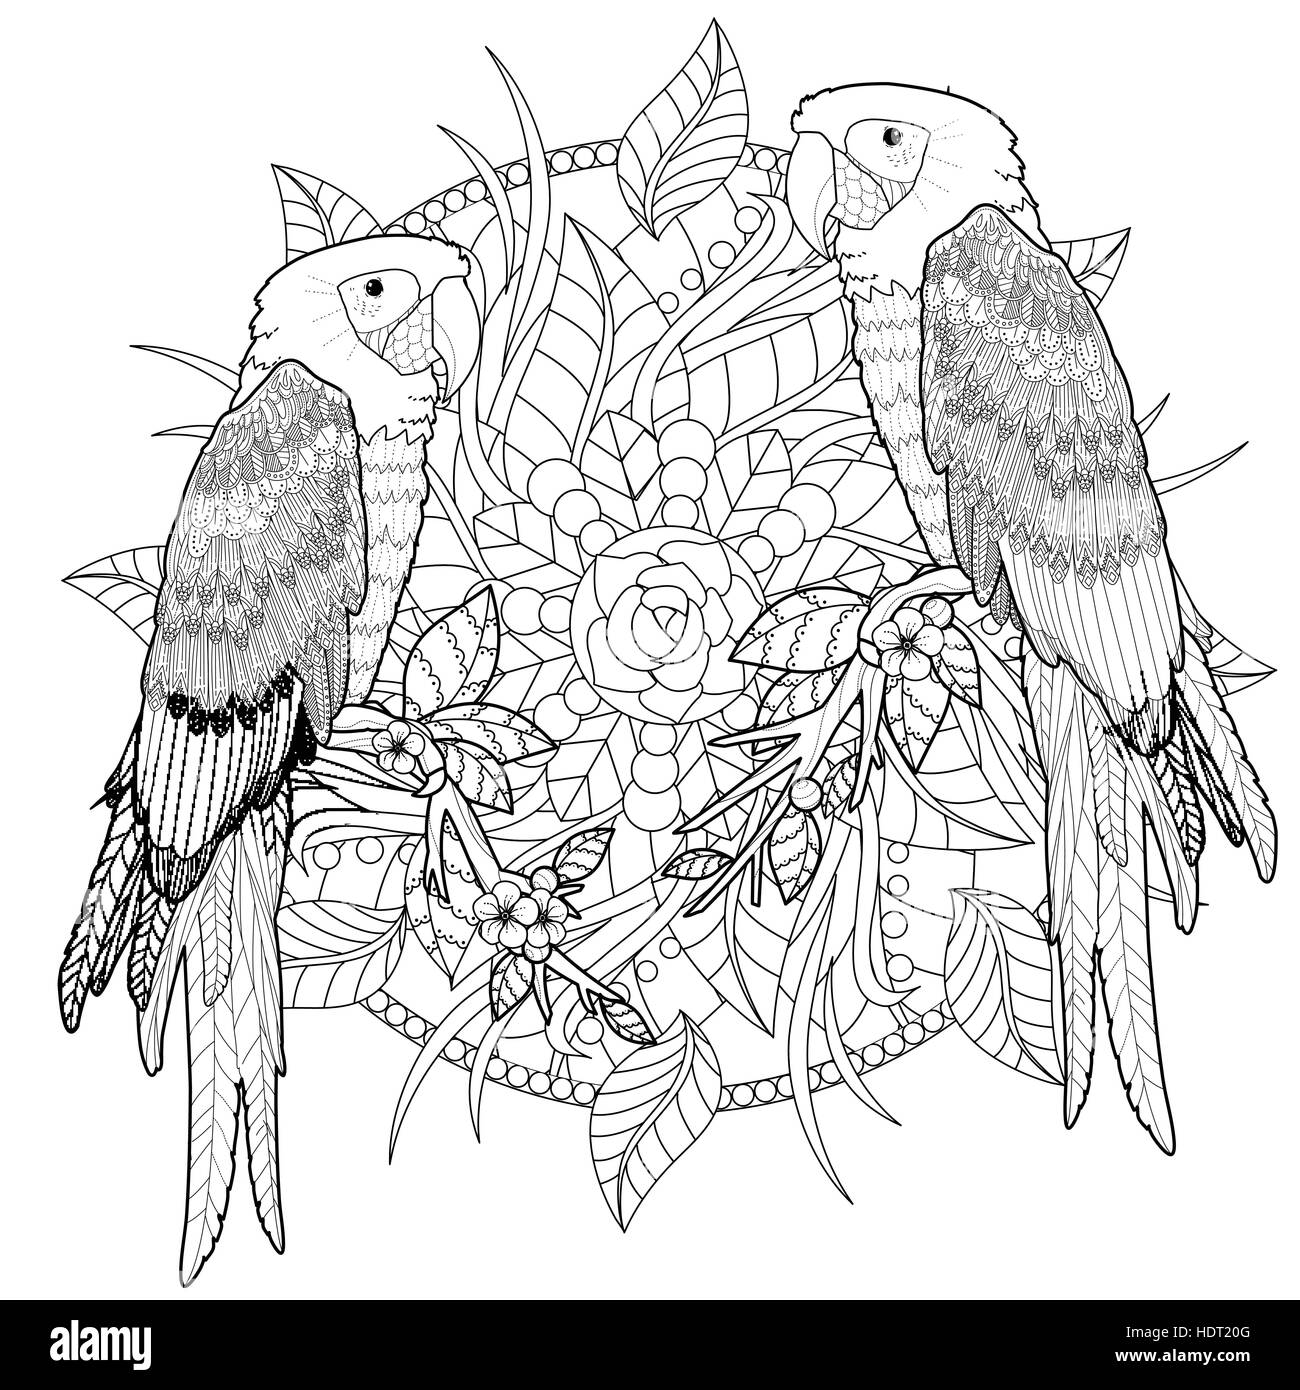 lovely parrot coloring page in exquisite style Stock Vector Art ...